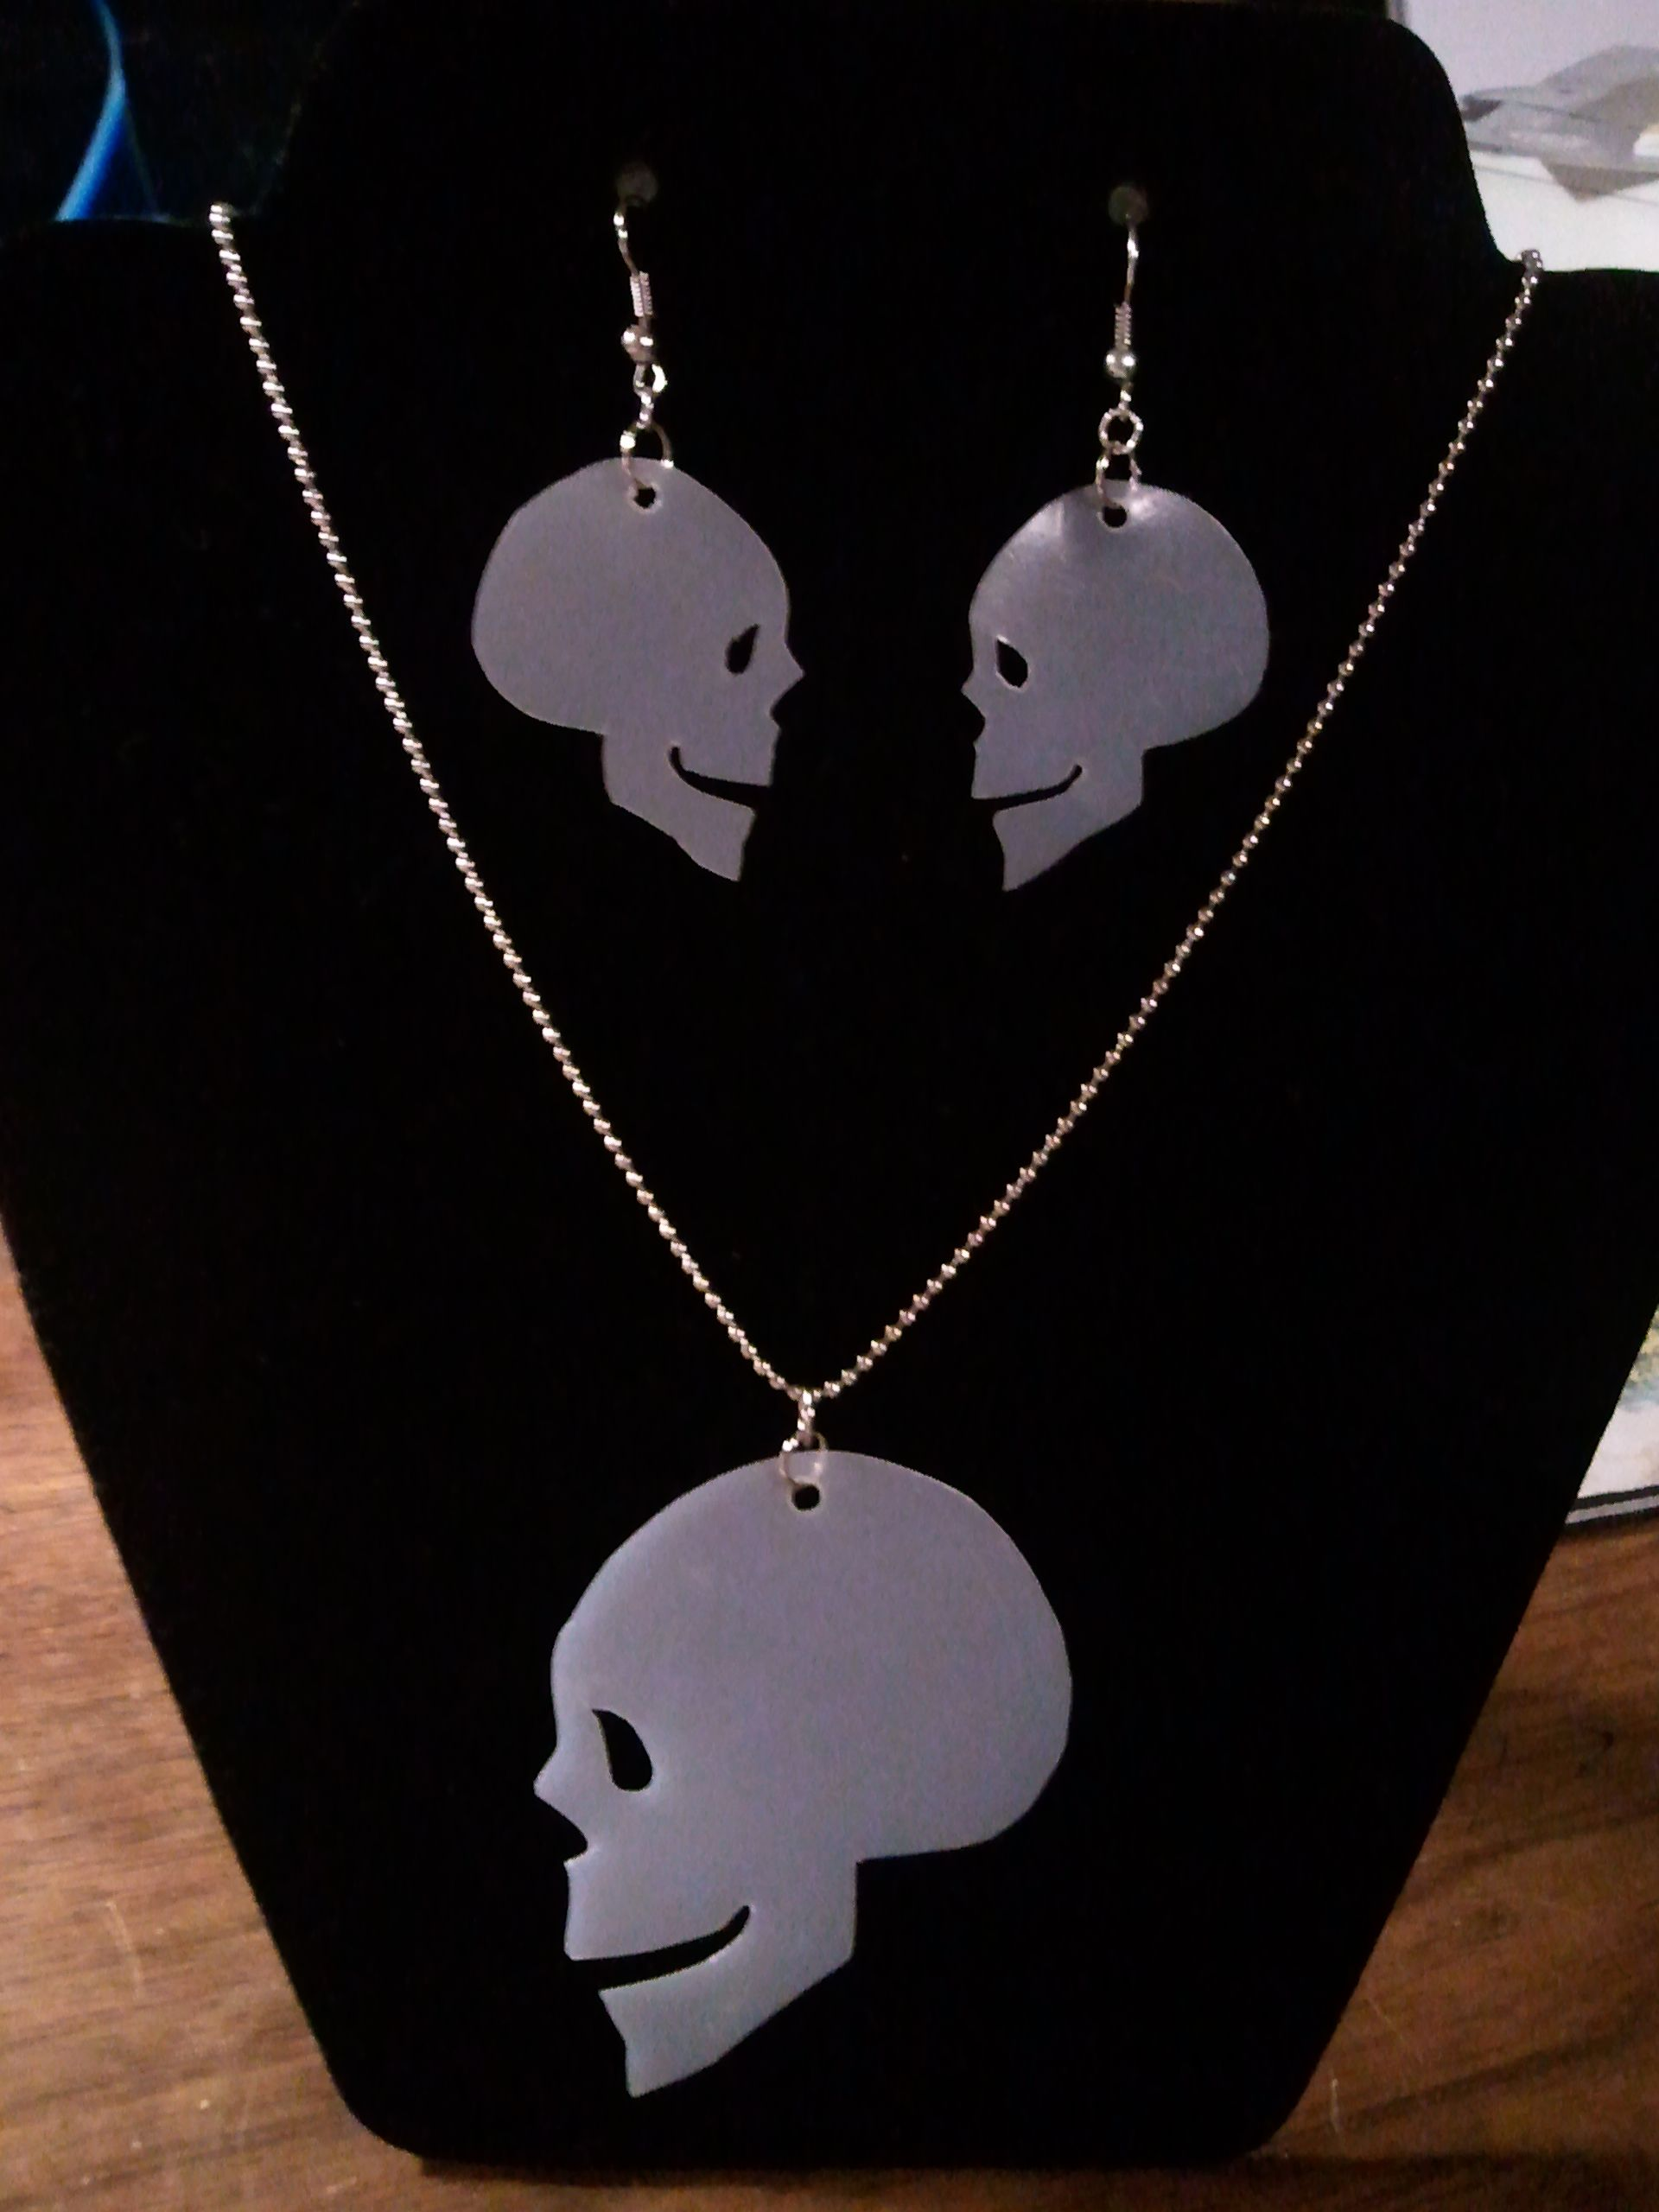 More milk jug halloween jewelry a skull necklace and earring set